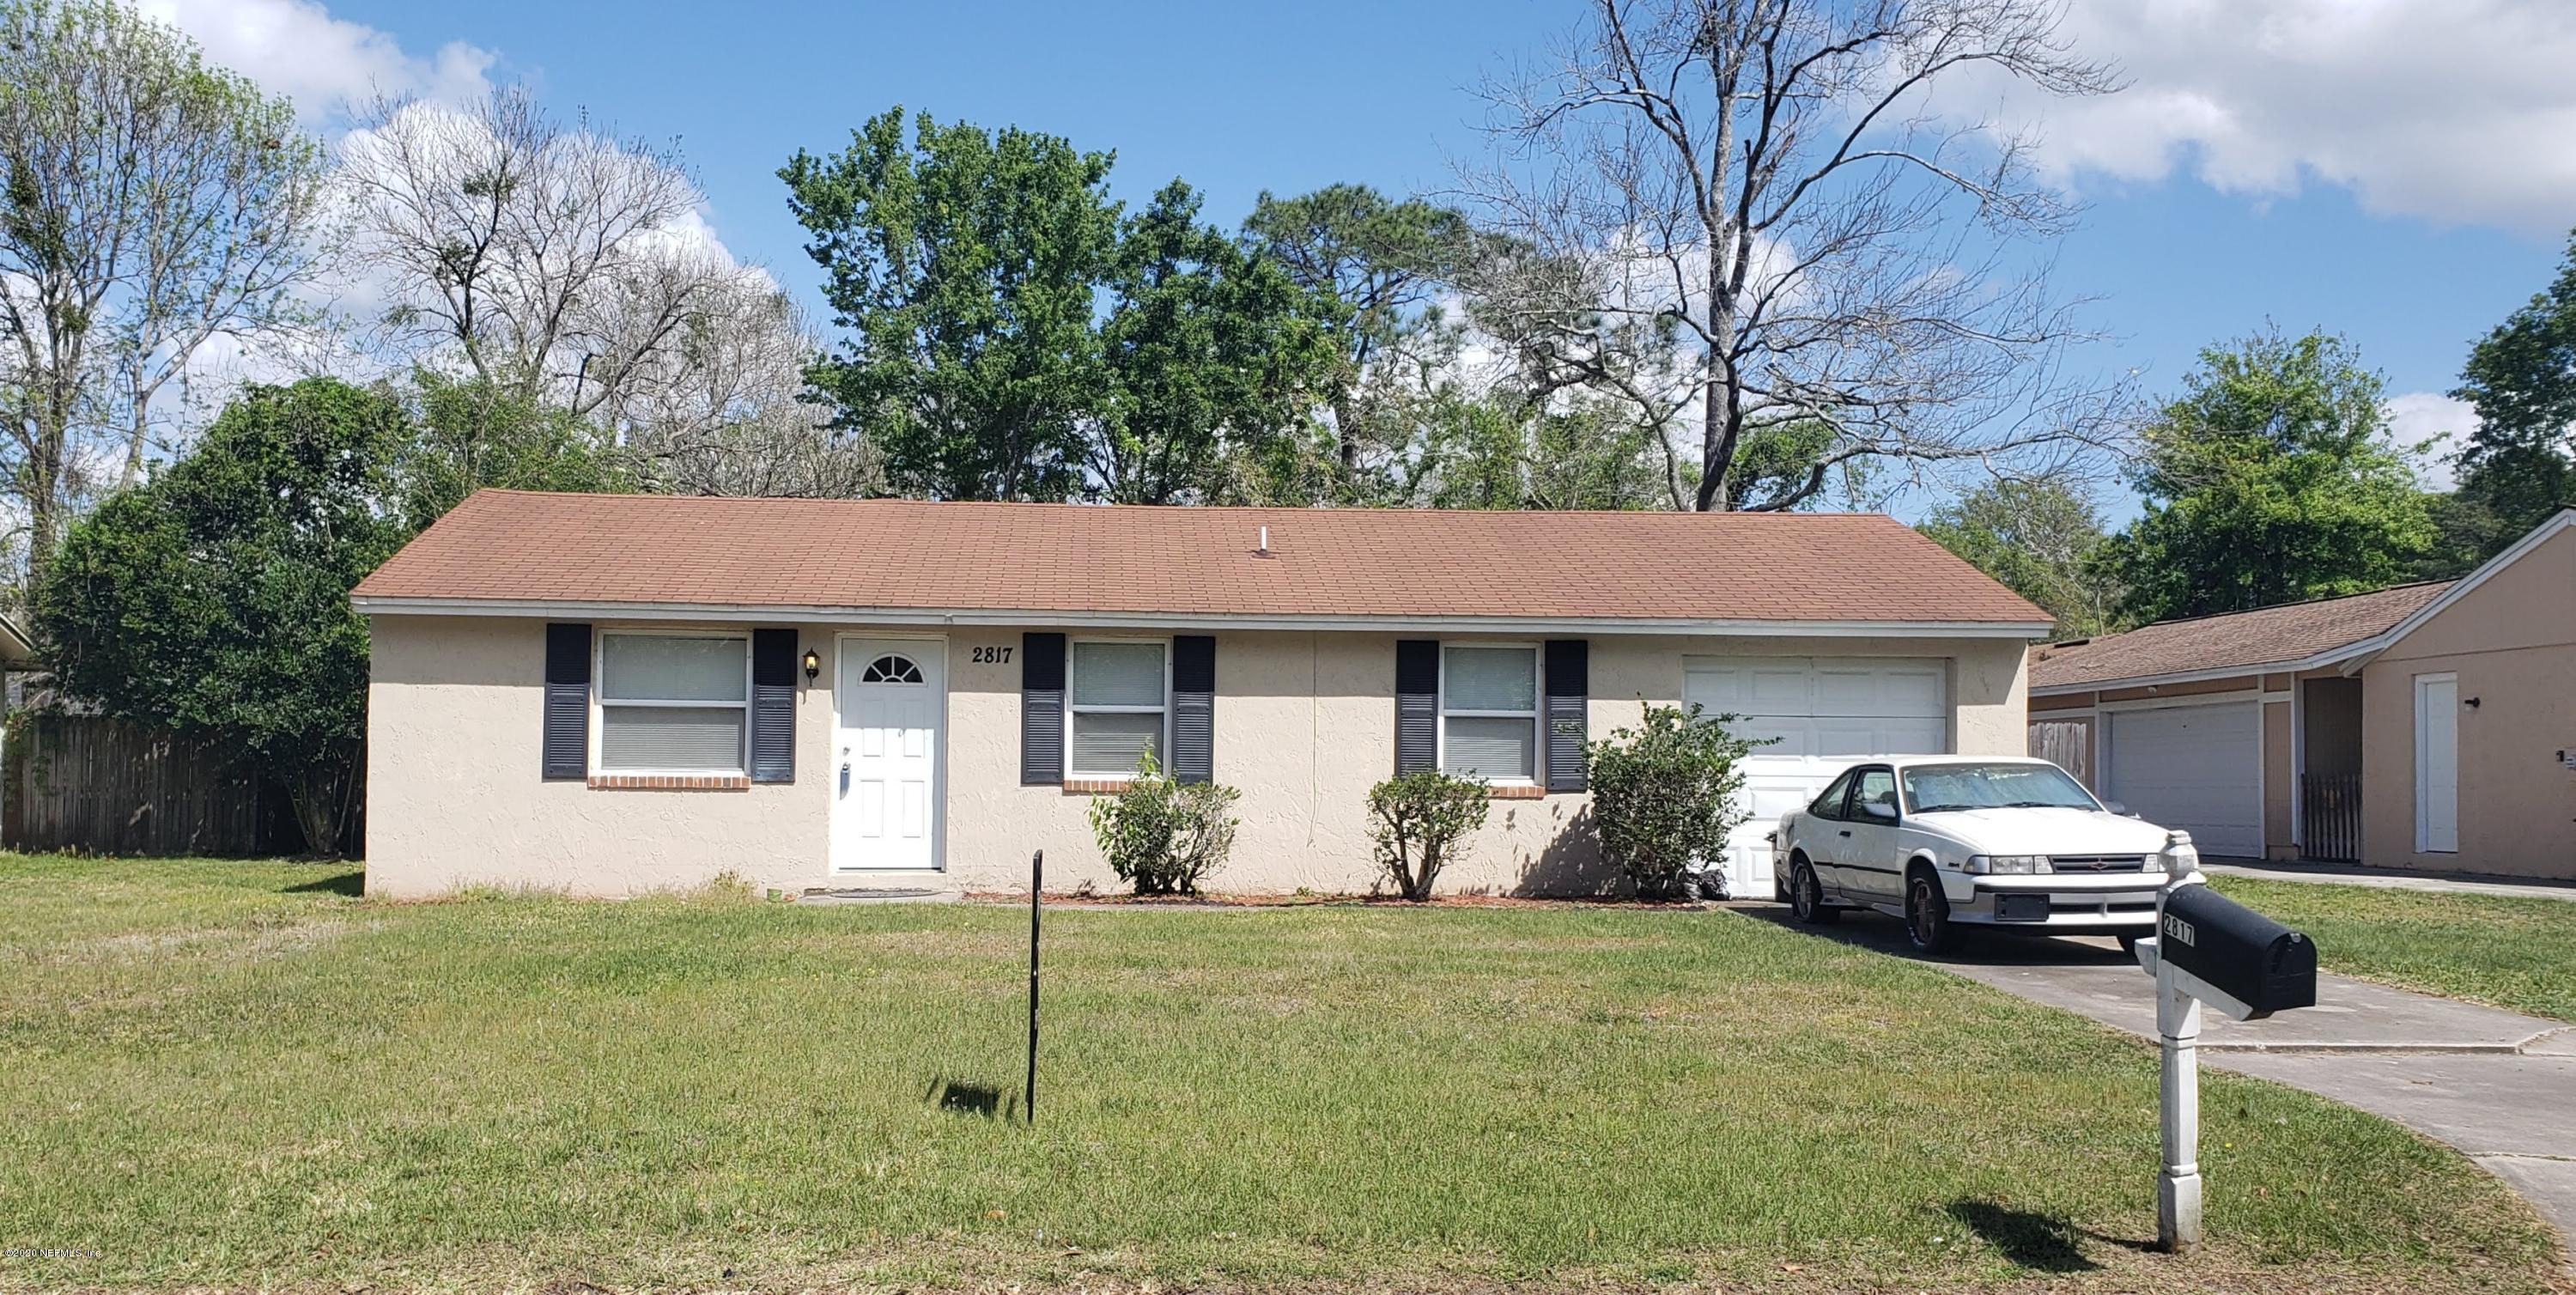 2817 KIOWA, ORANGE PARK, FLORIDA 32065, 3 Bedrooms Bedrooms, ,2 BathroomsBathrooms,Residential,For sale,KIOWA,1044768